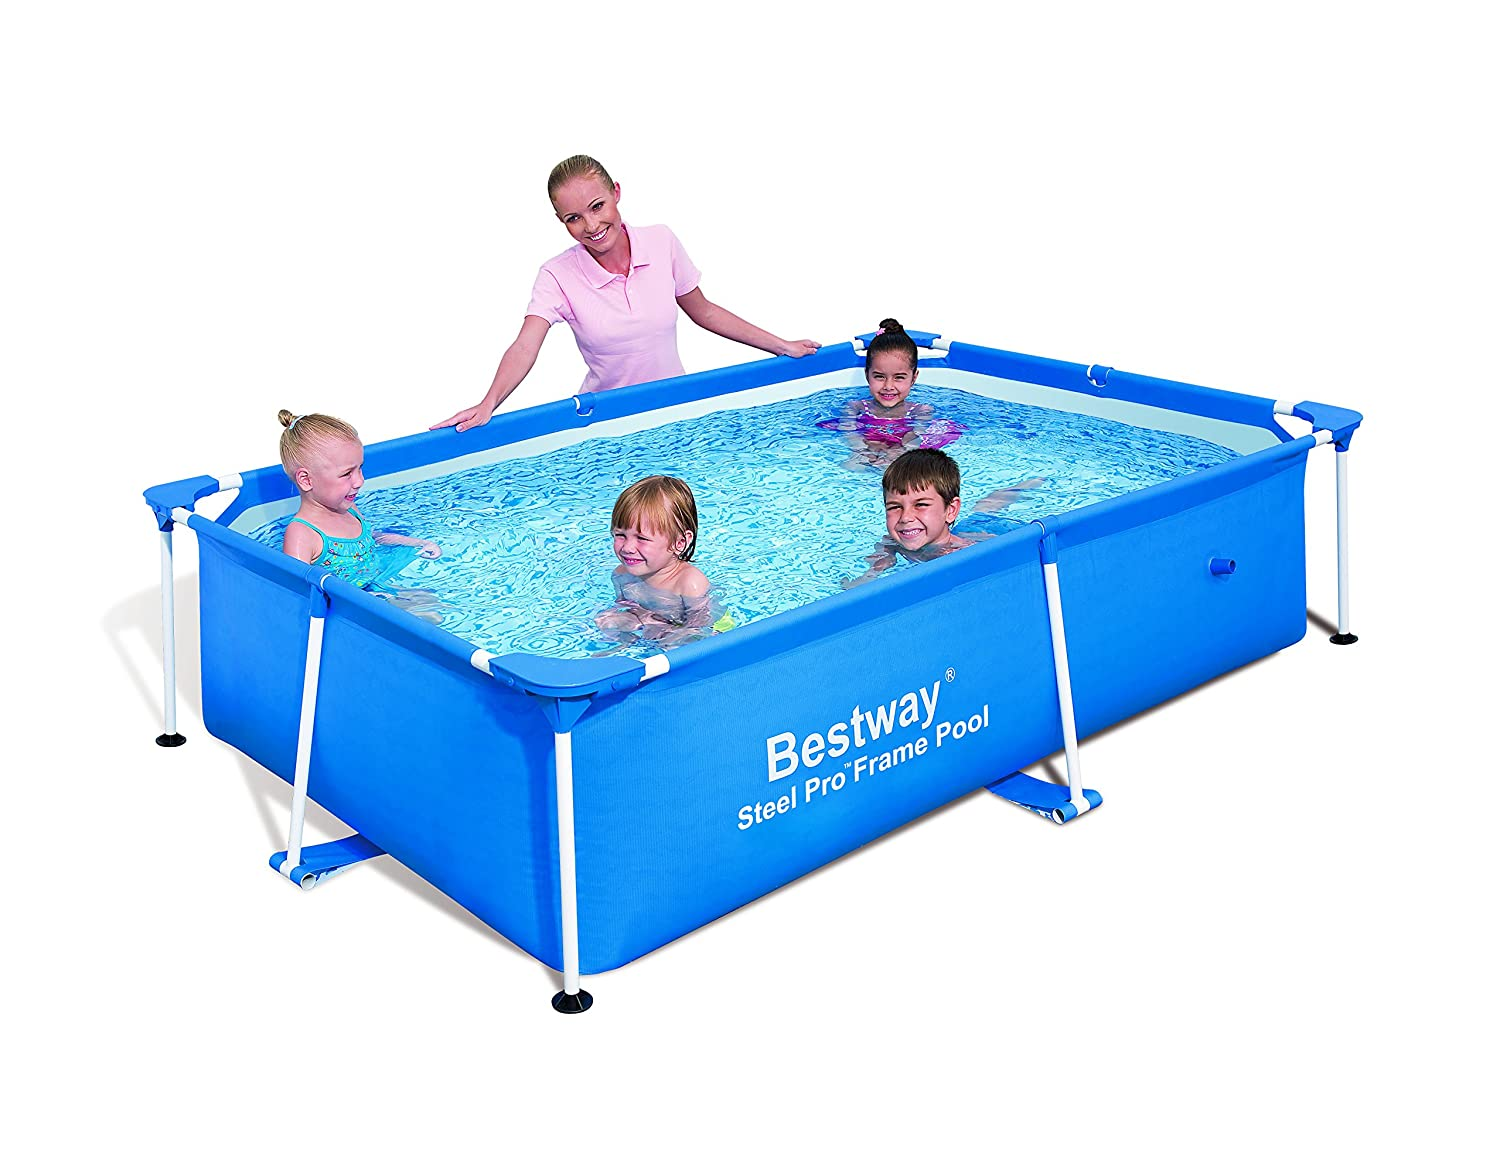 Amazon.com : Bestway Rectangular Splash Frame Pool 94\